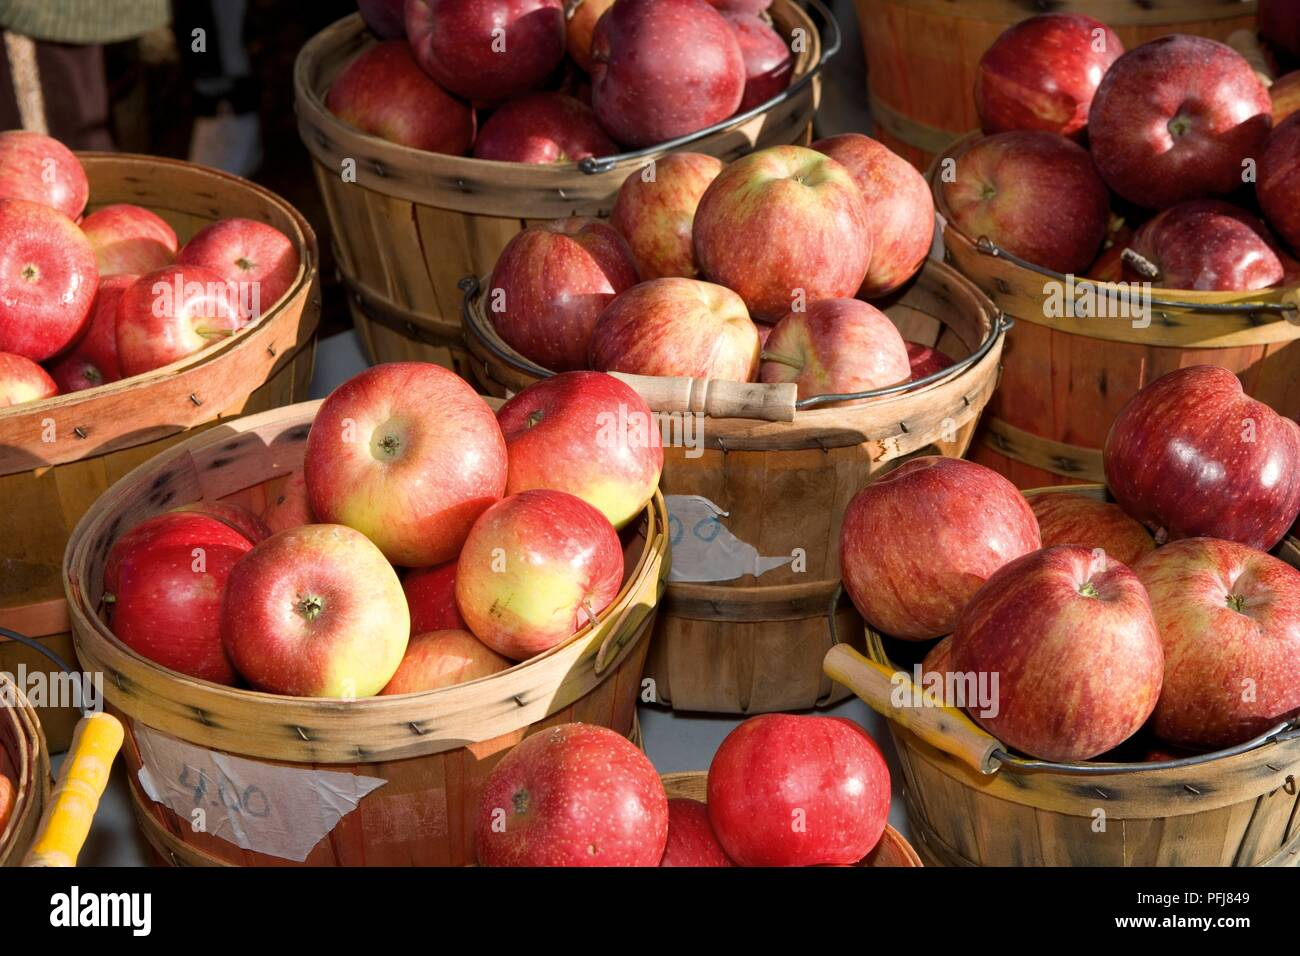 Usa New Mexico Santa Fe Farmer S Market Baskets Of Apples For